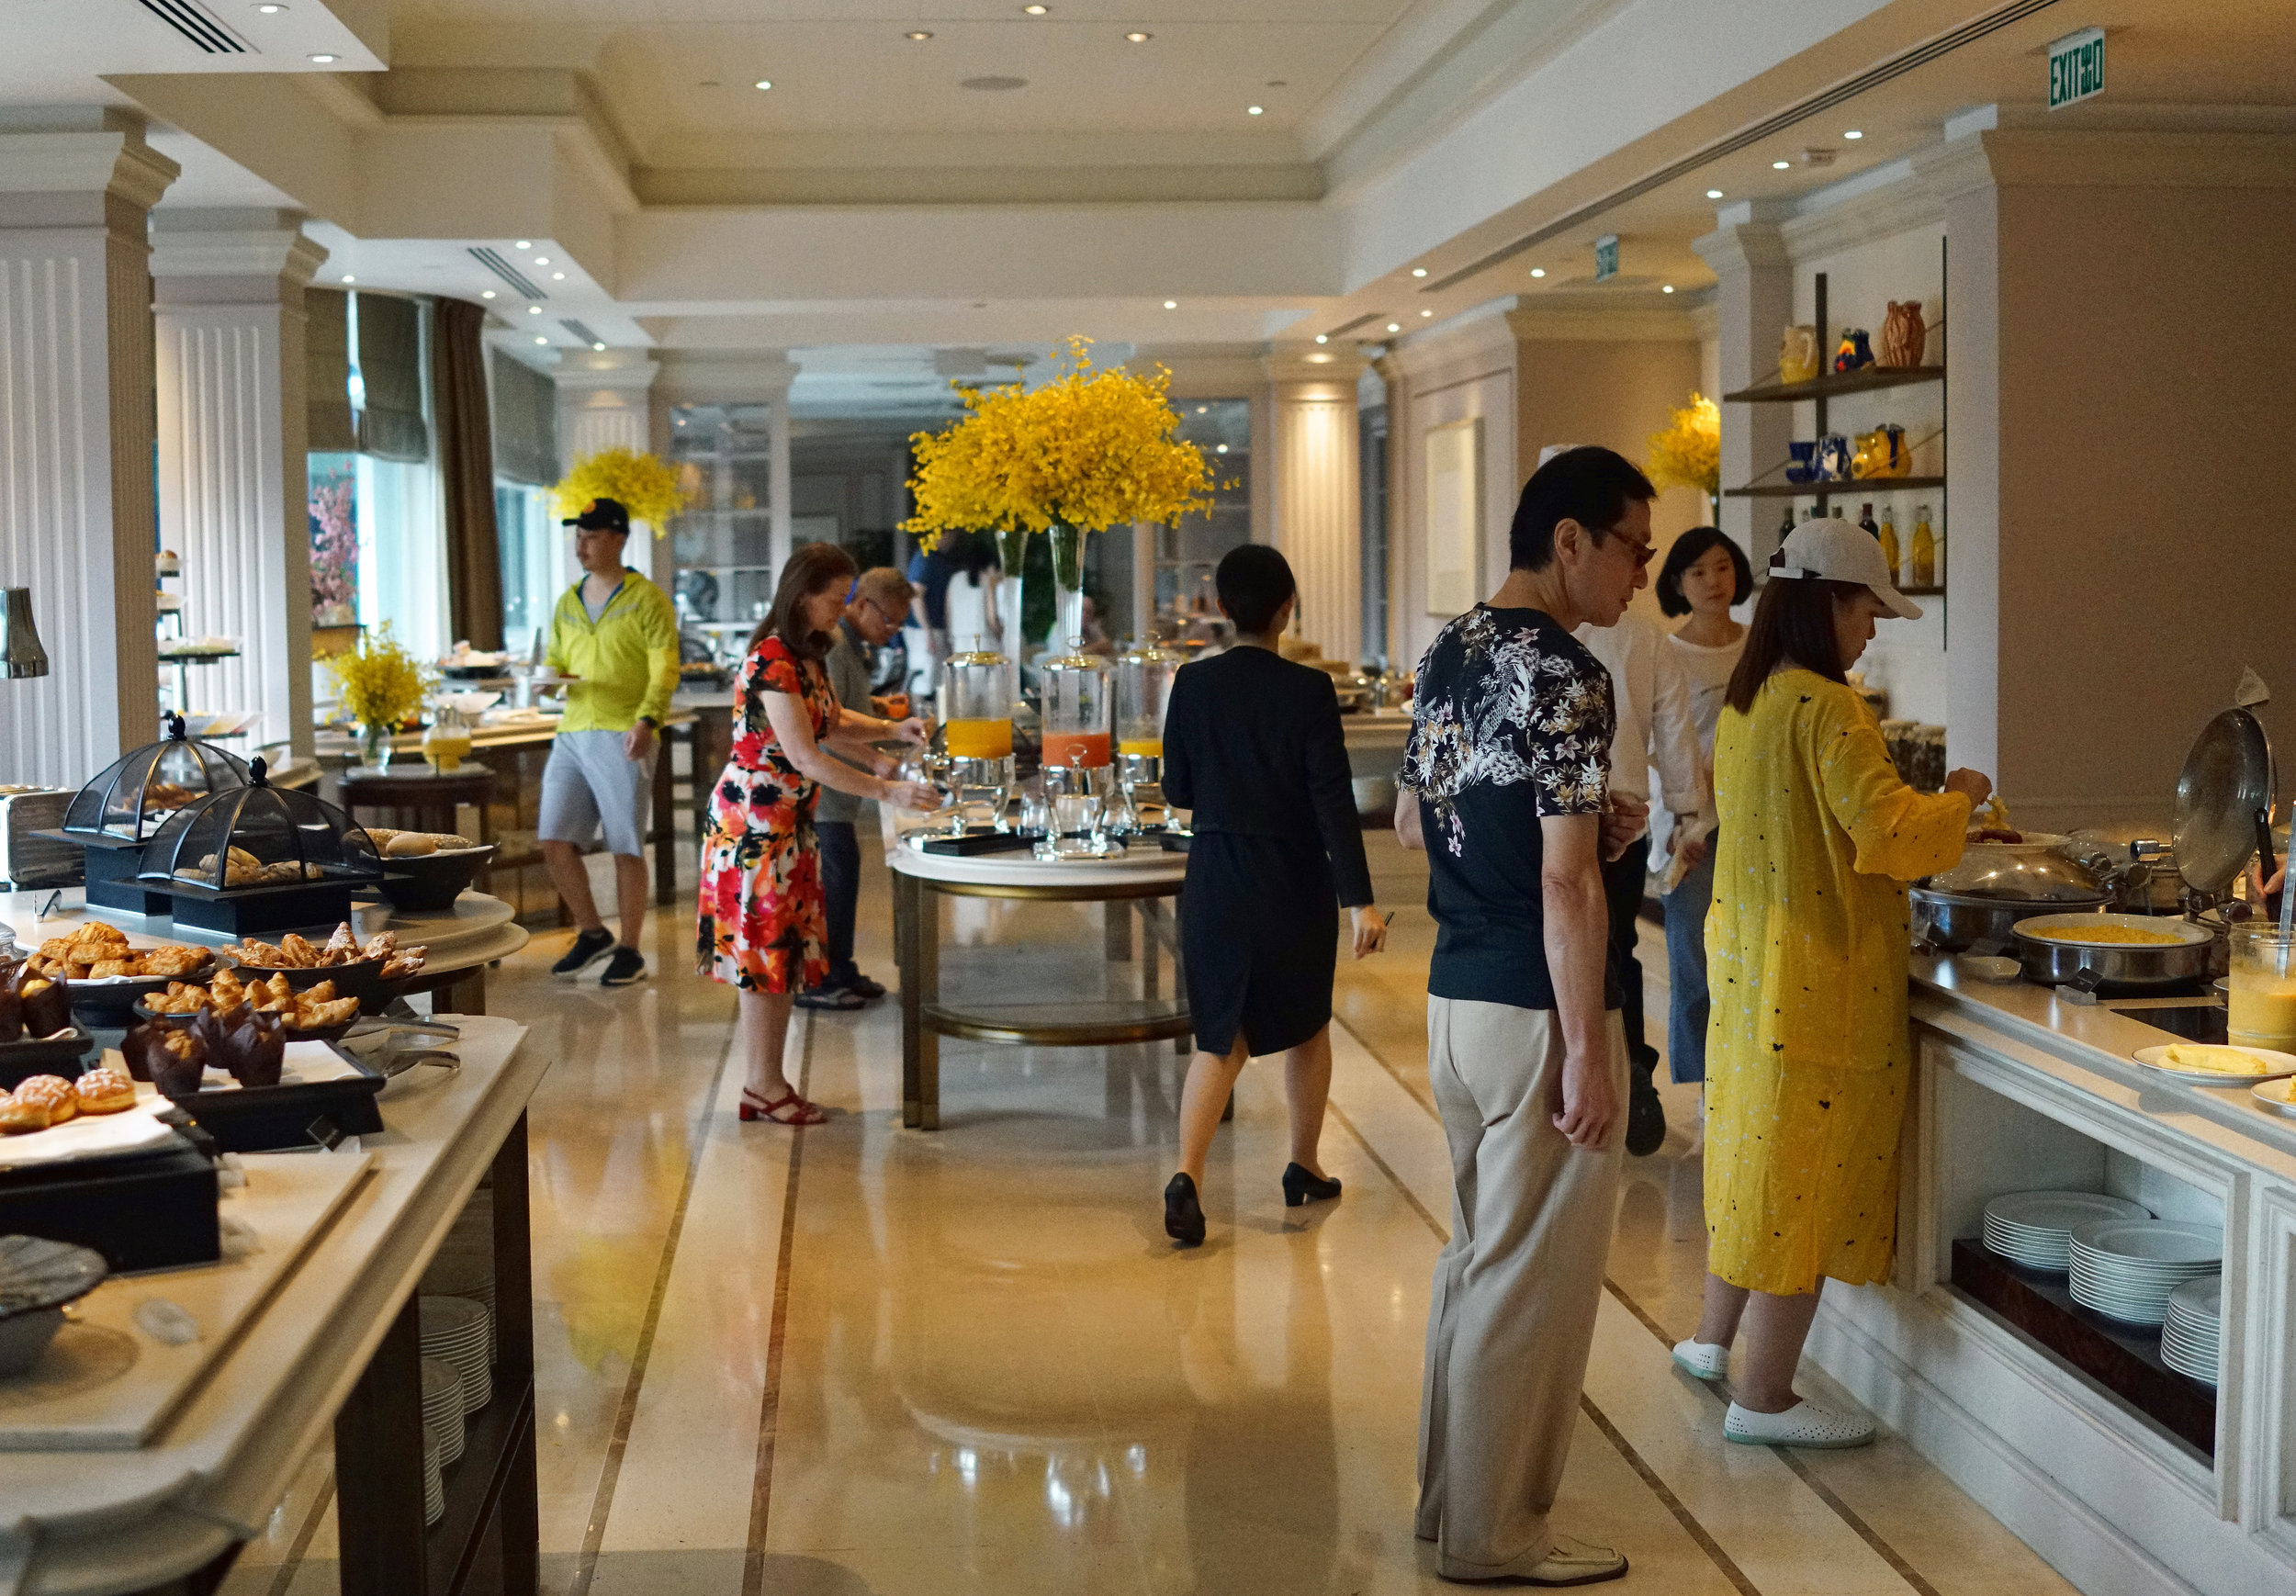 Prior to having Afternoon Tea in the Peninsula I did actually have the absolutely fabulous buffet breakfast in the Verandah on the 1st floor of the Peninsula, golly gosh.. it was fabulous, it has to be one of the best breakfast places in Hong Kong and thanks again to Craig and Deb for indulging me and to the Peninsula staff for graciously hosting a scruffy bugger like me.